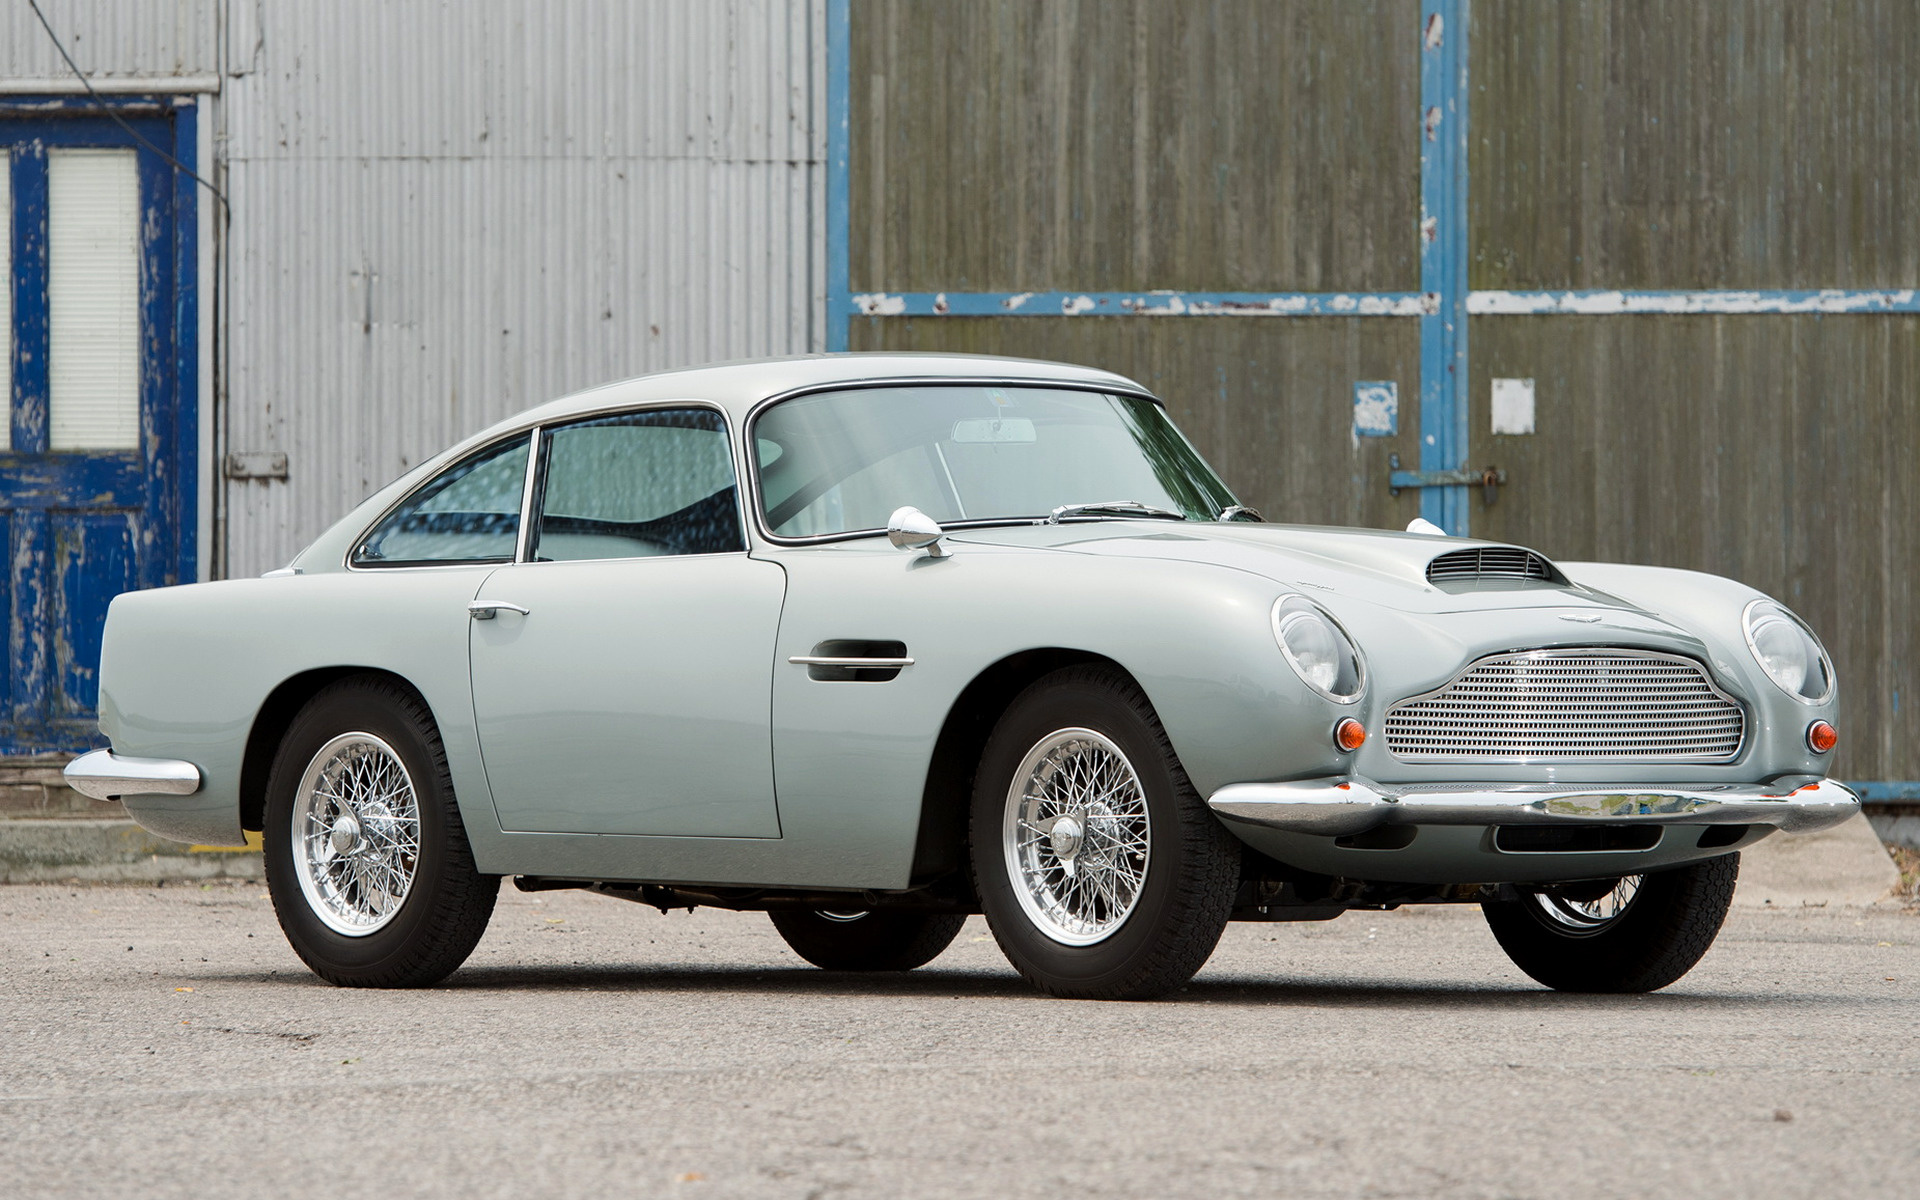 Burning Car Wallpaper Rolls Royce 1959 Aston Martin Db4 Gt Wallpapers And Hd Images Car